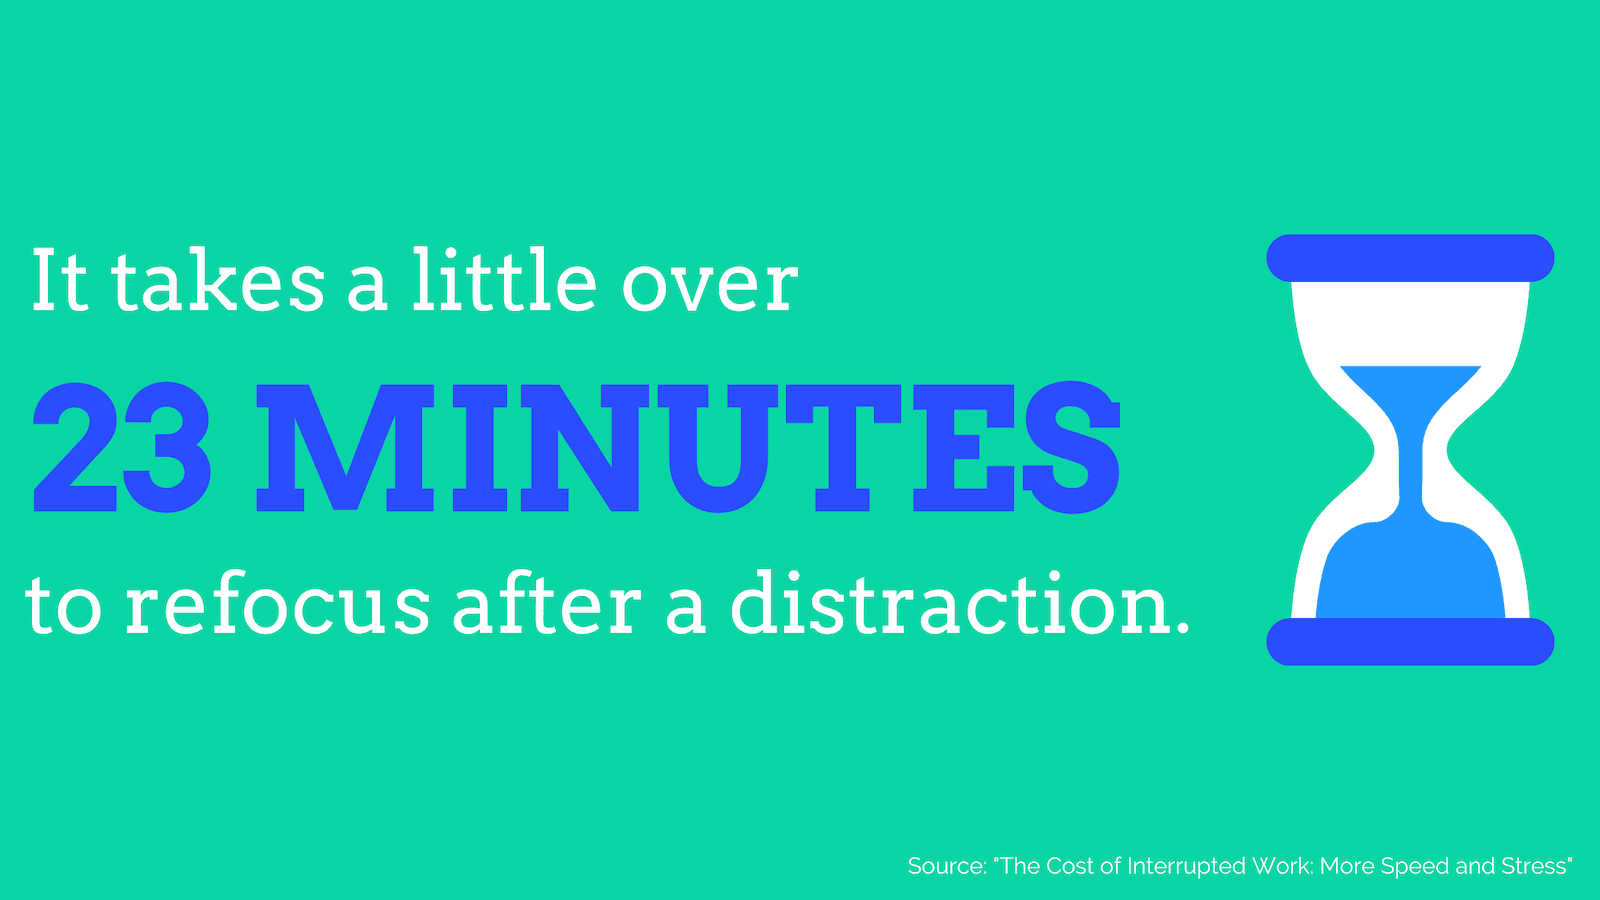 It takes a little over 23 minutes to refocus after a distraction.